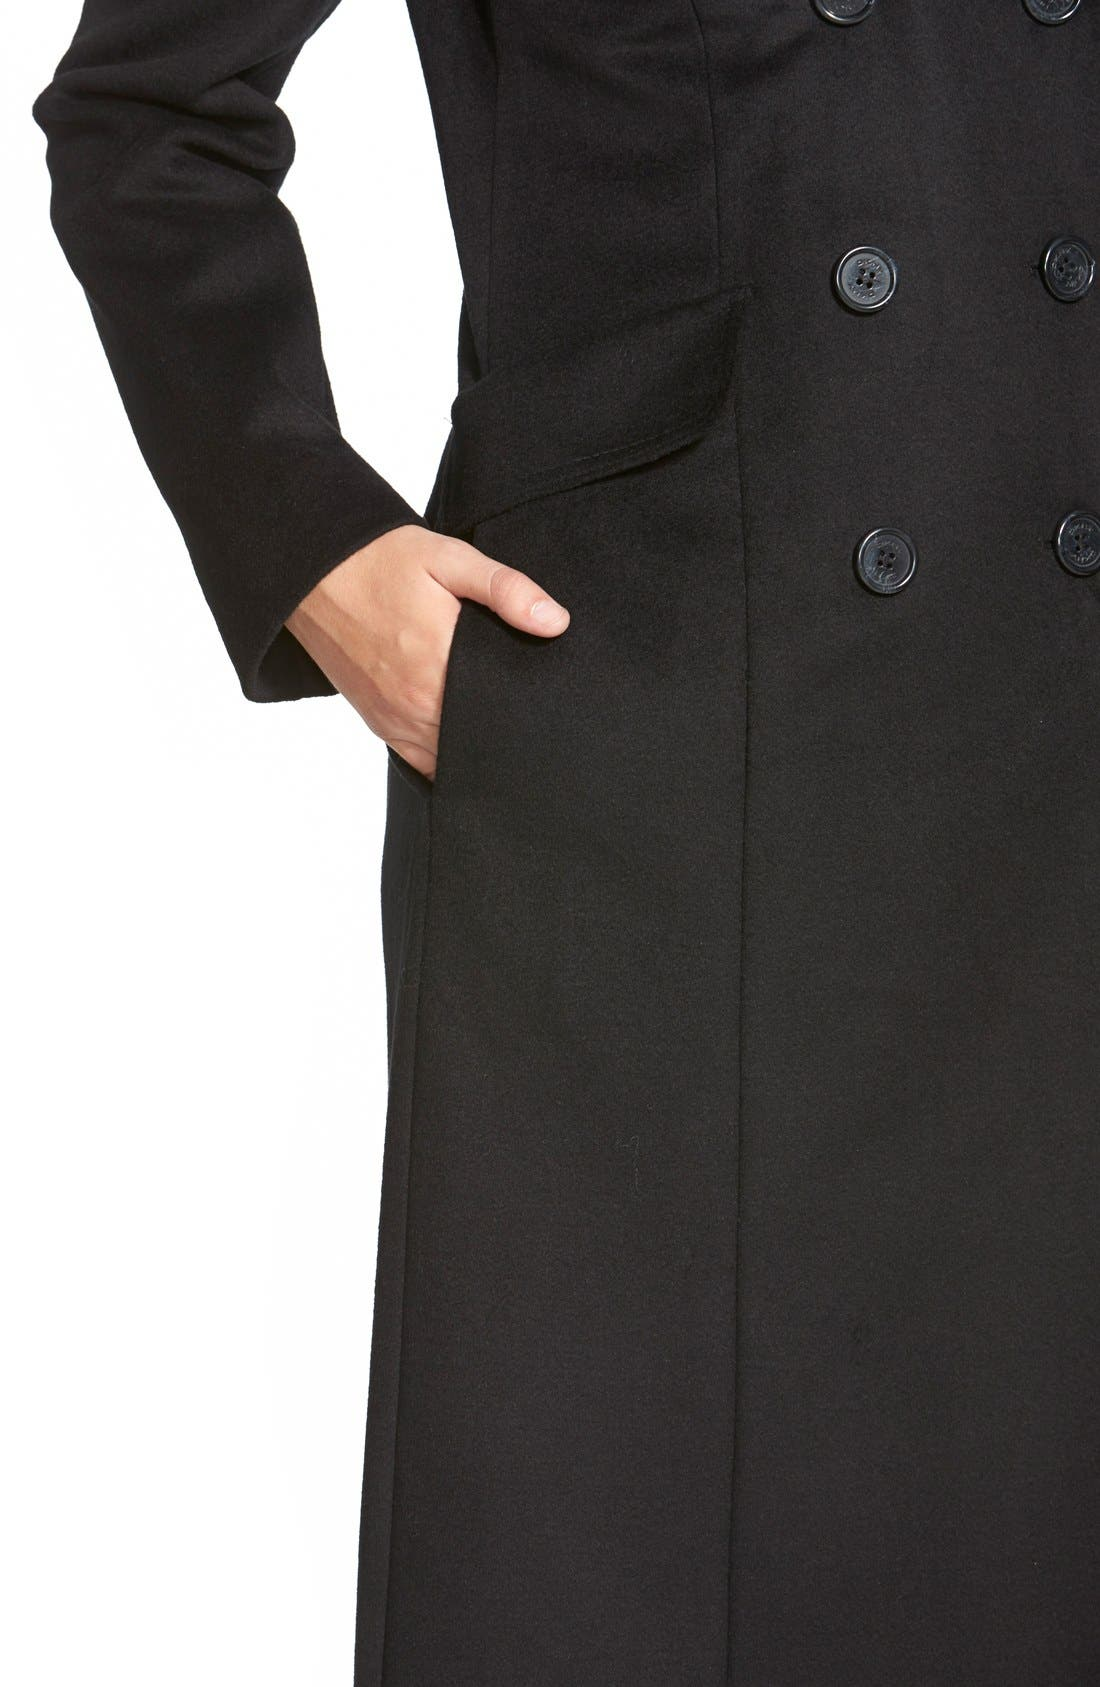 Long Wool Blend Coat with Faux Fur Collar,                             Alternate thumbnail 4, color,                             001